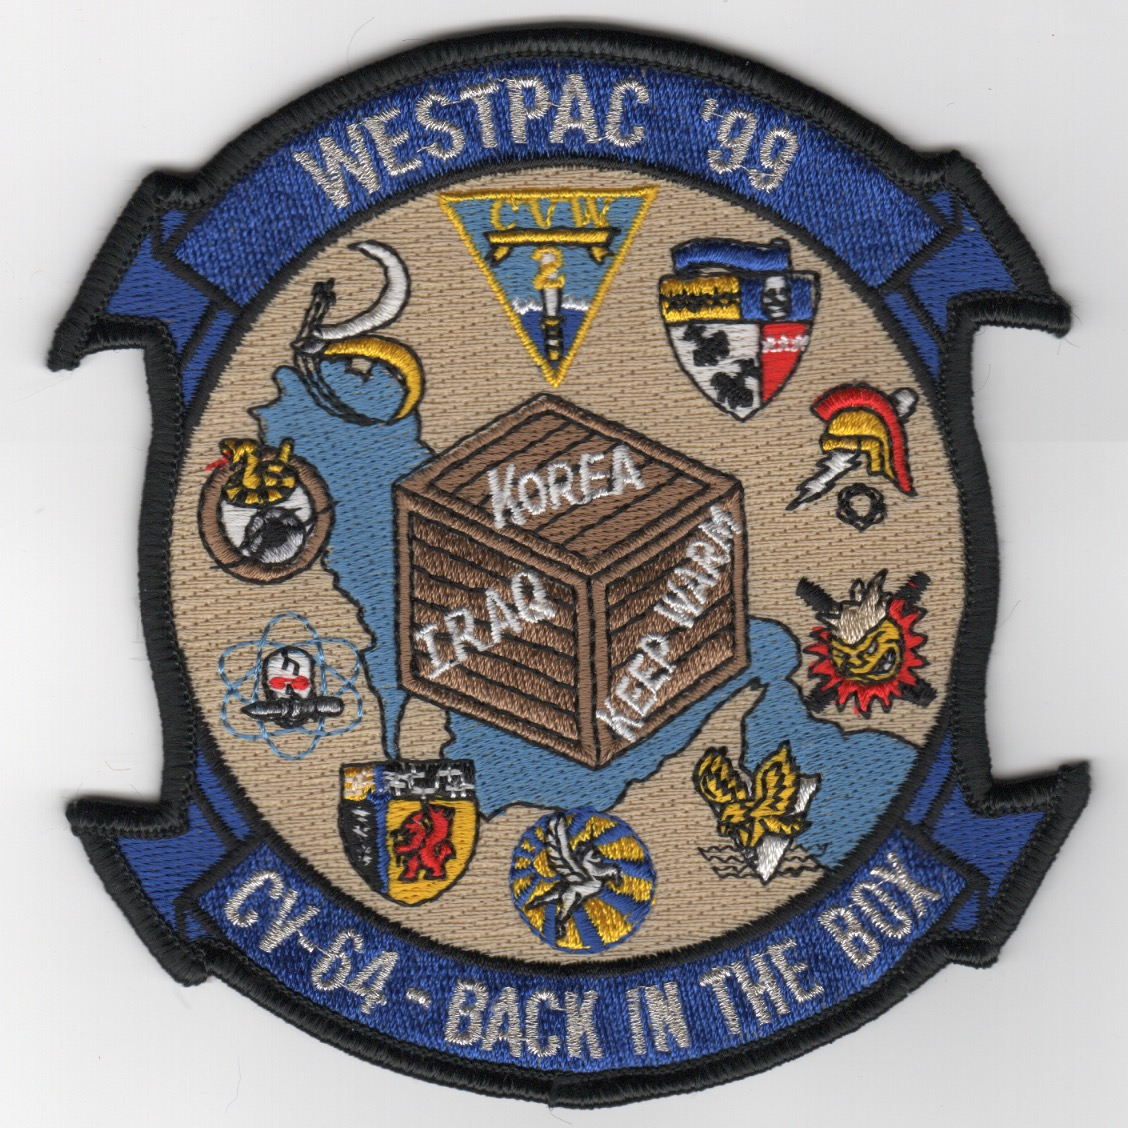 378) CV-64/CVW-2 1999 WestPac Cruise Patch